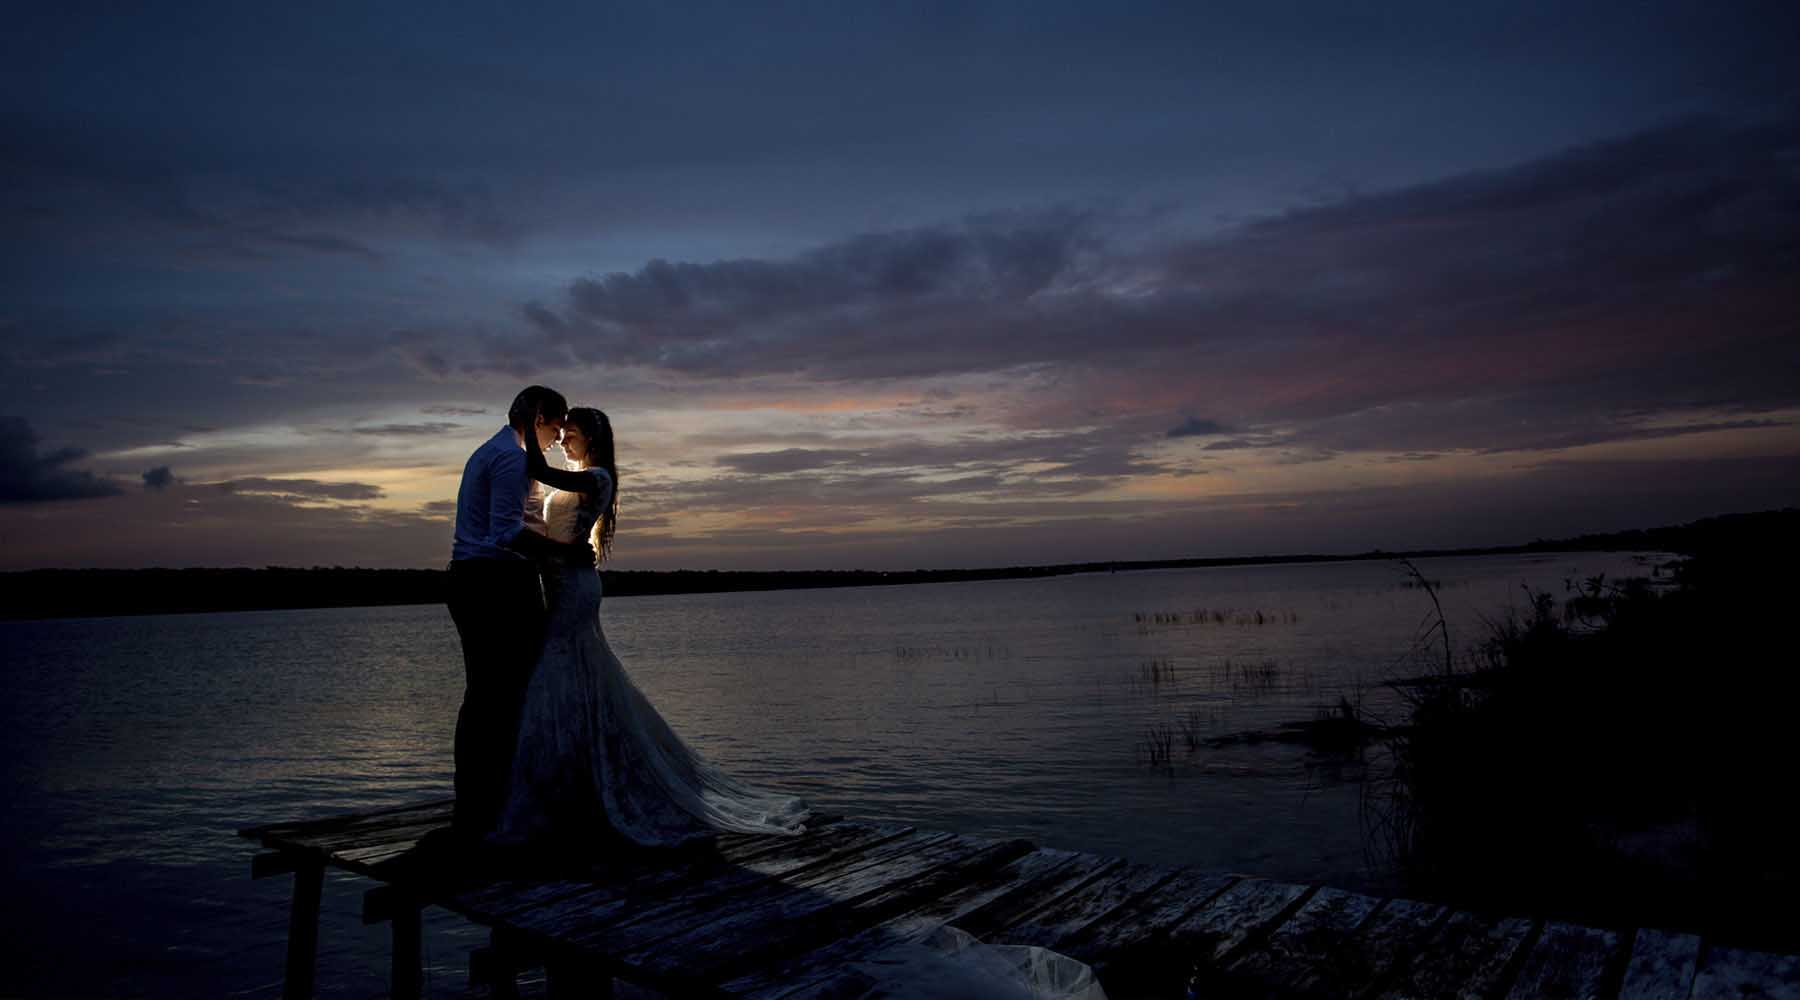 SUNSET DAY AFTER WEDDING COLLECTION BY HOMERO ALEMAN PHOTOGRAPHY